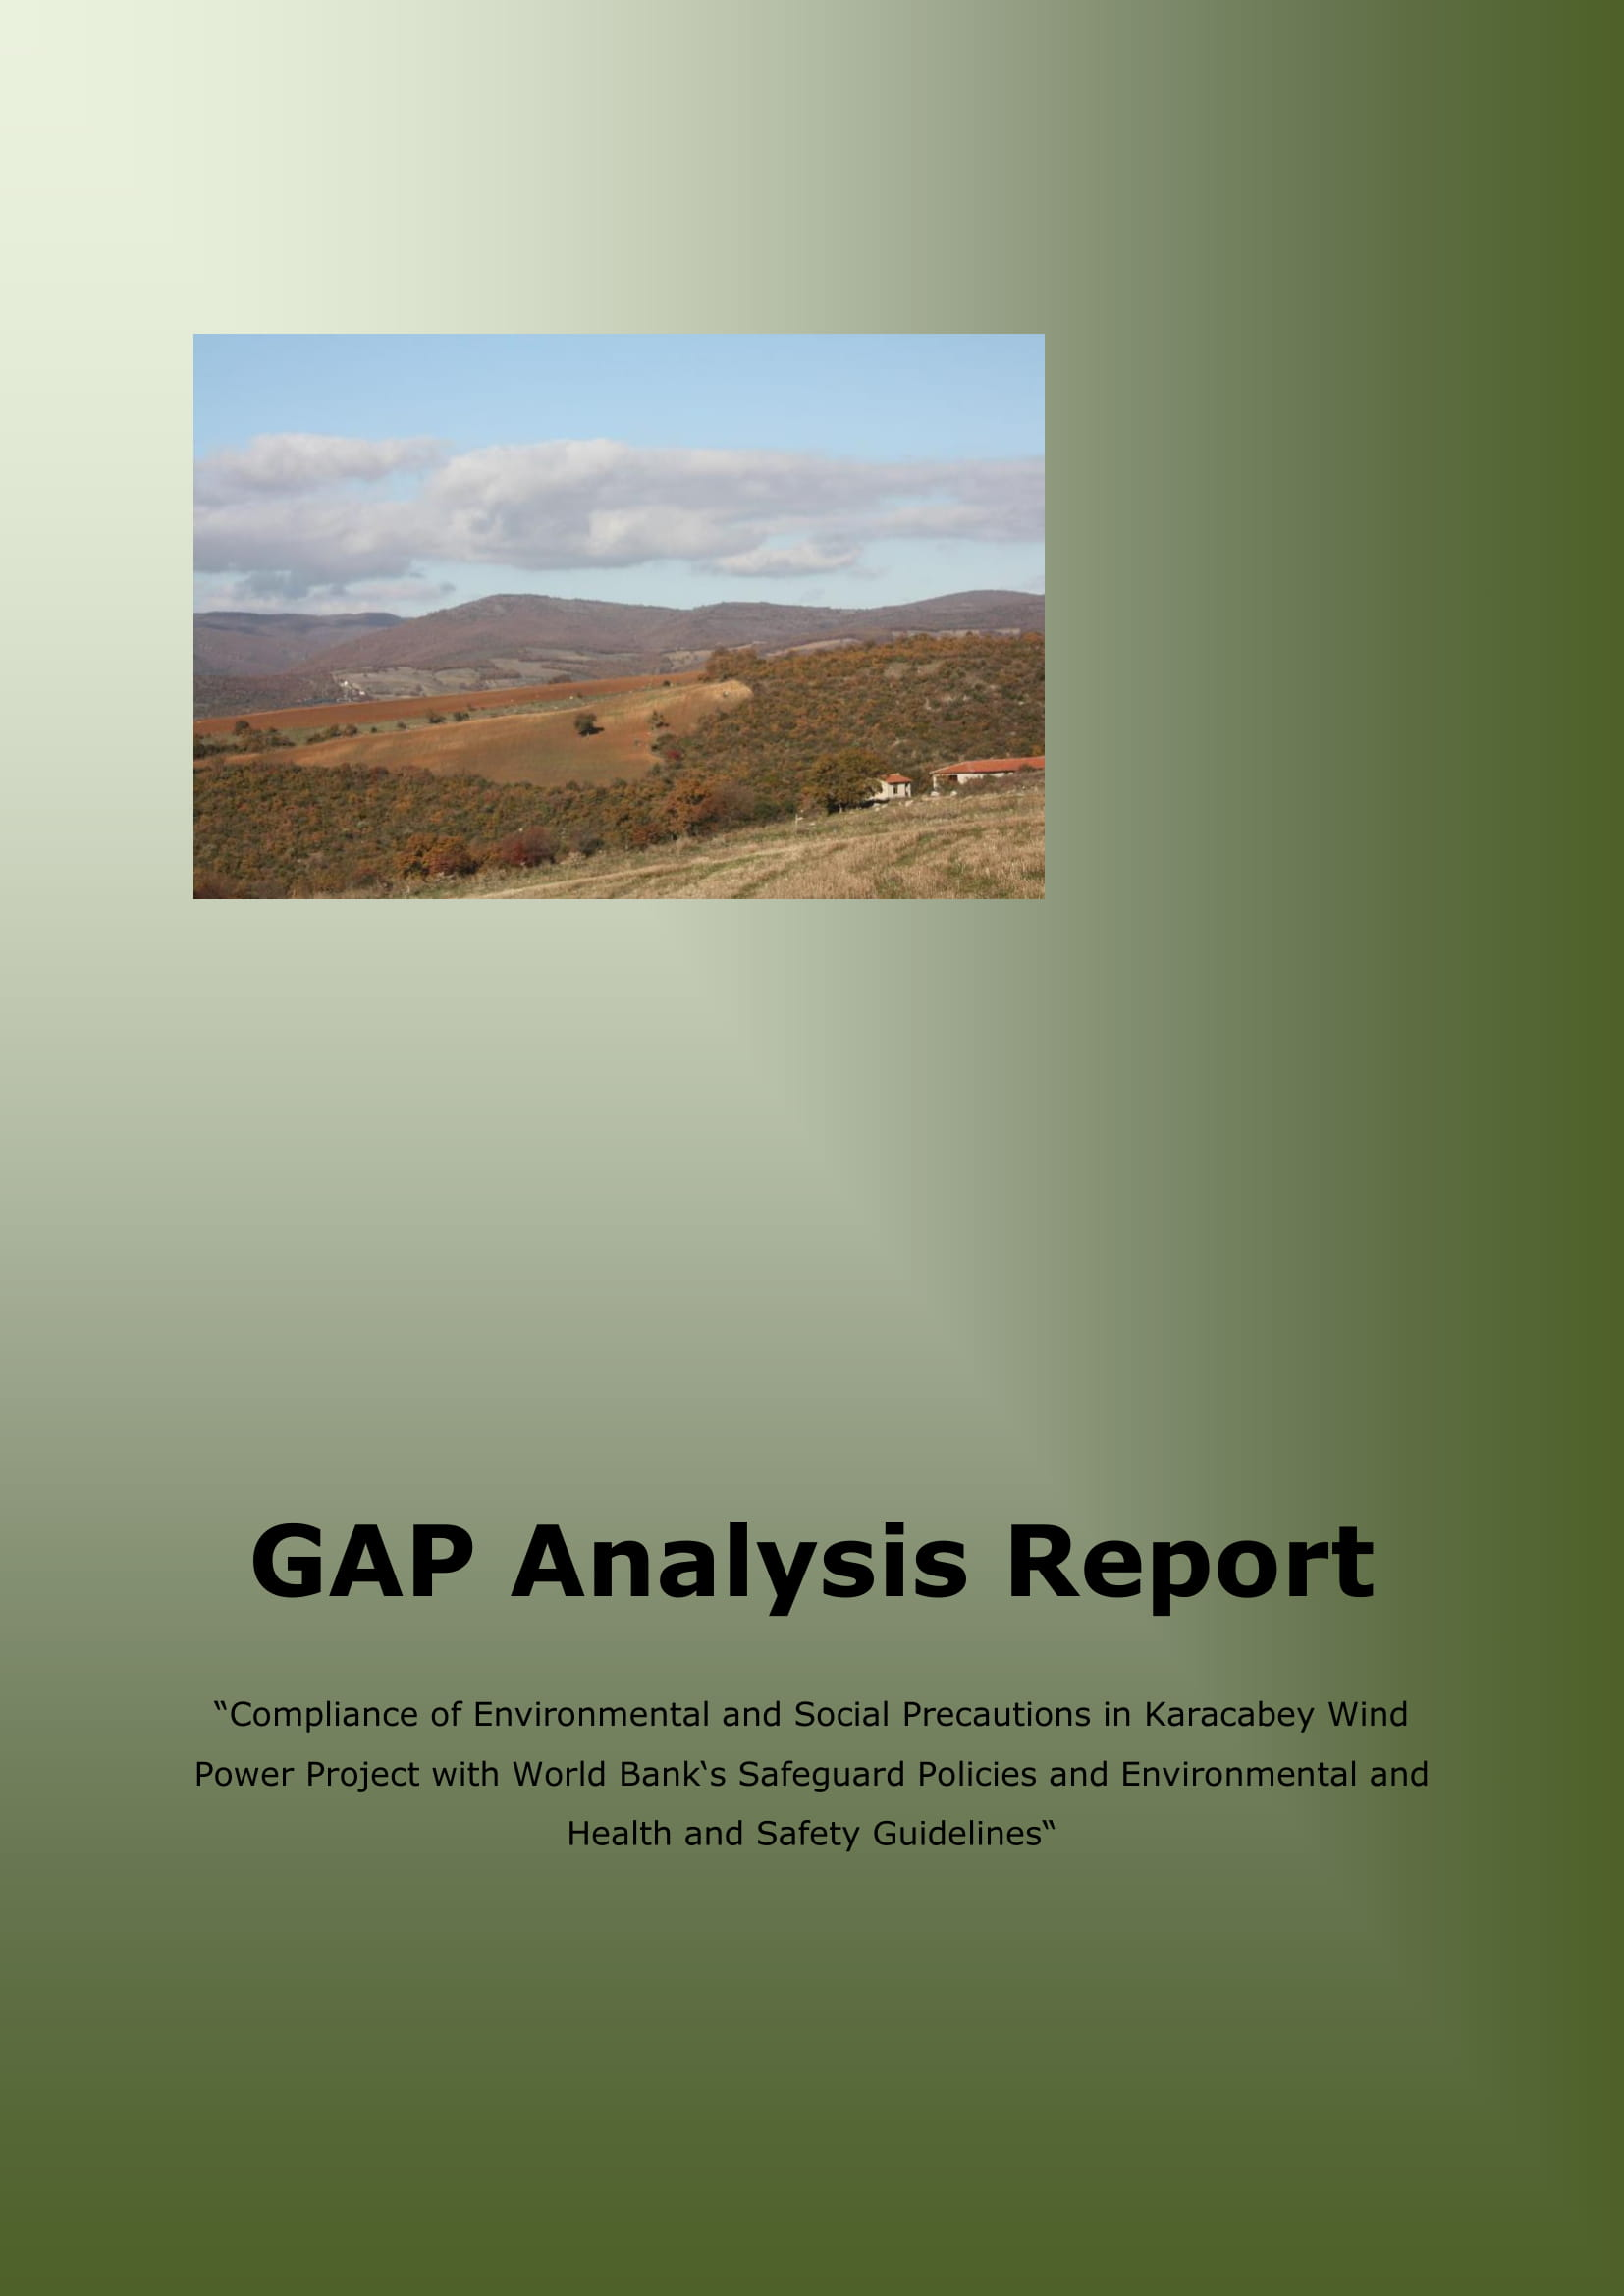 complete gap analysis report example 01